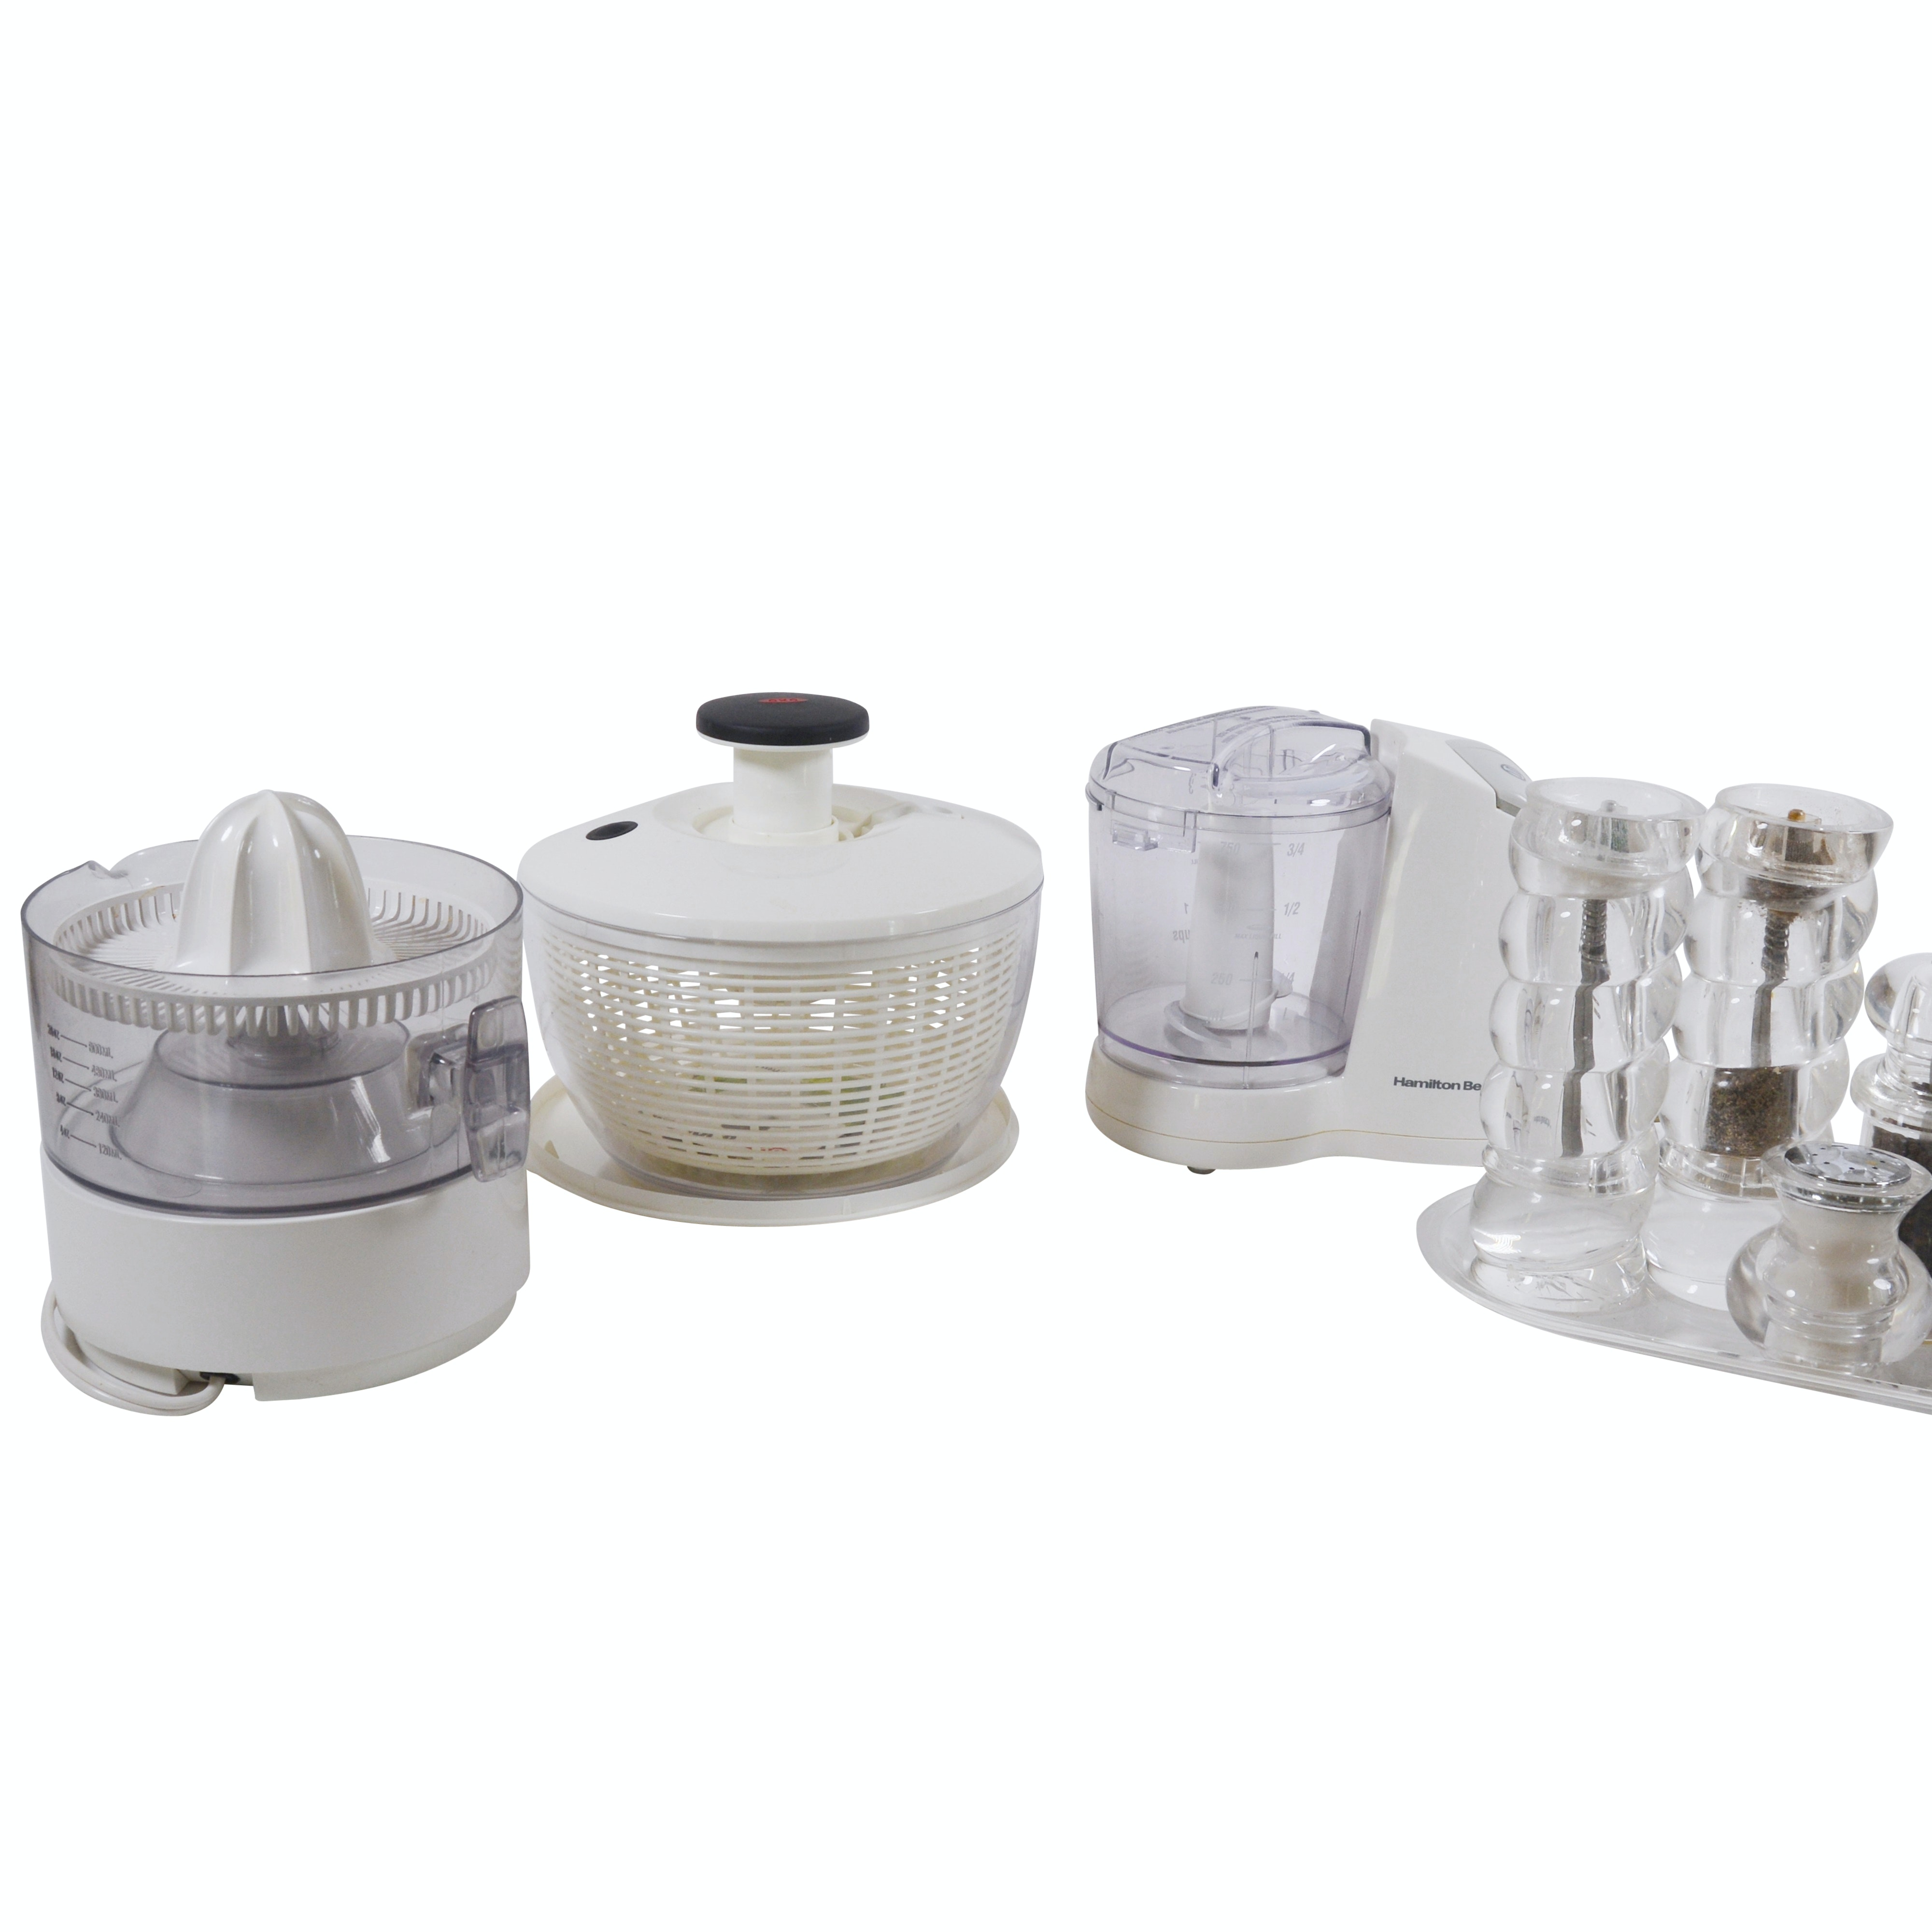 Small Kitchen Appliances Including Salad Spinner and Juicer